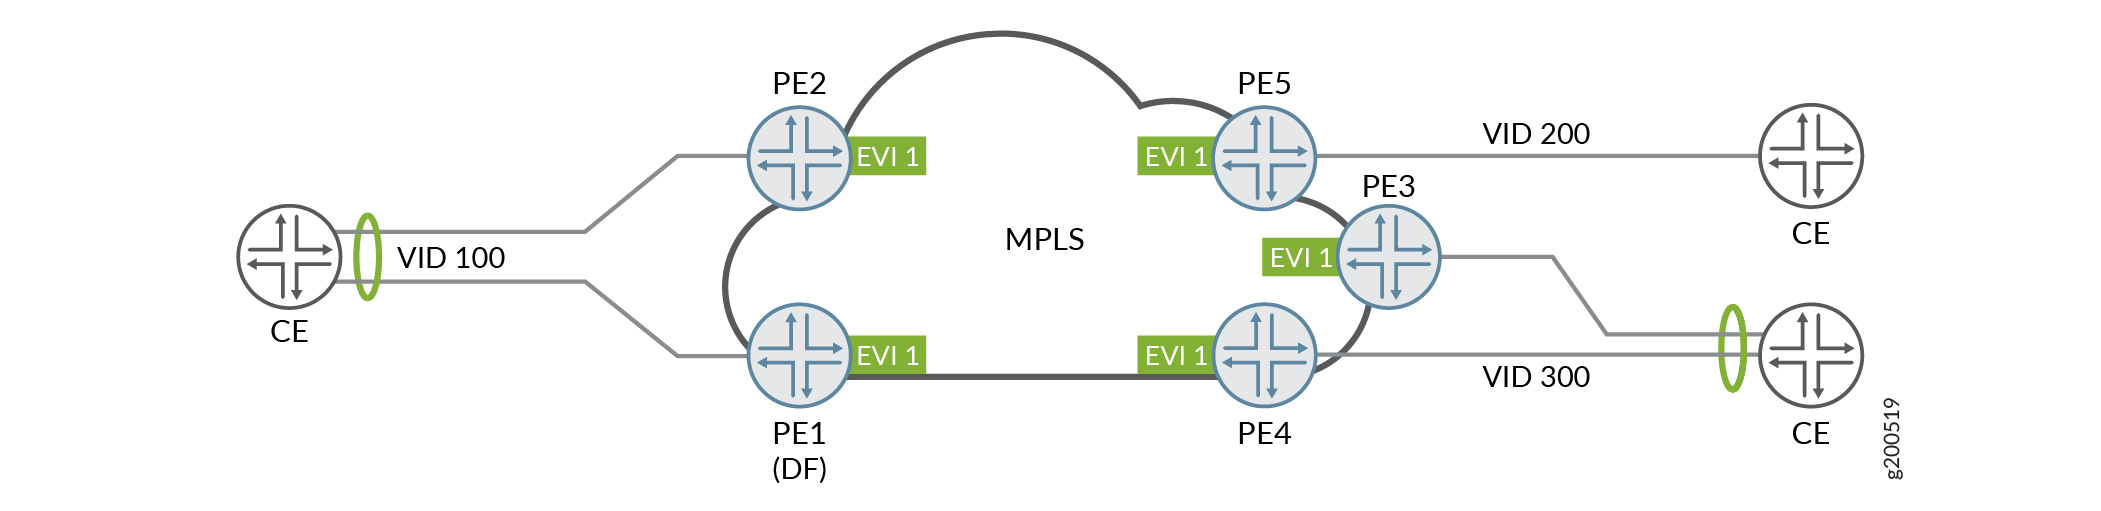 Multiple VIDs with VLAN Translation